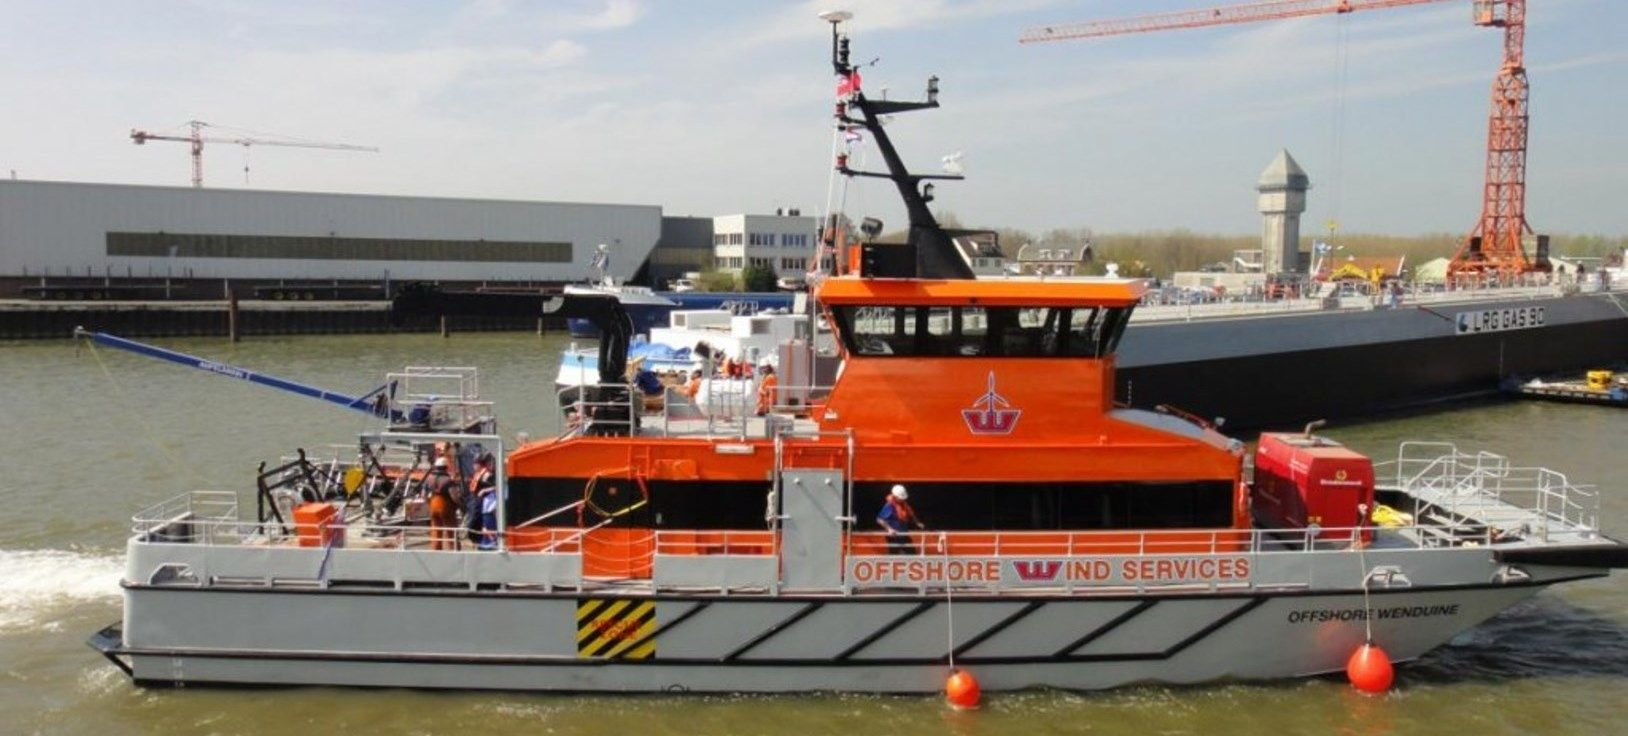 Offshore Service Vessels